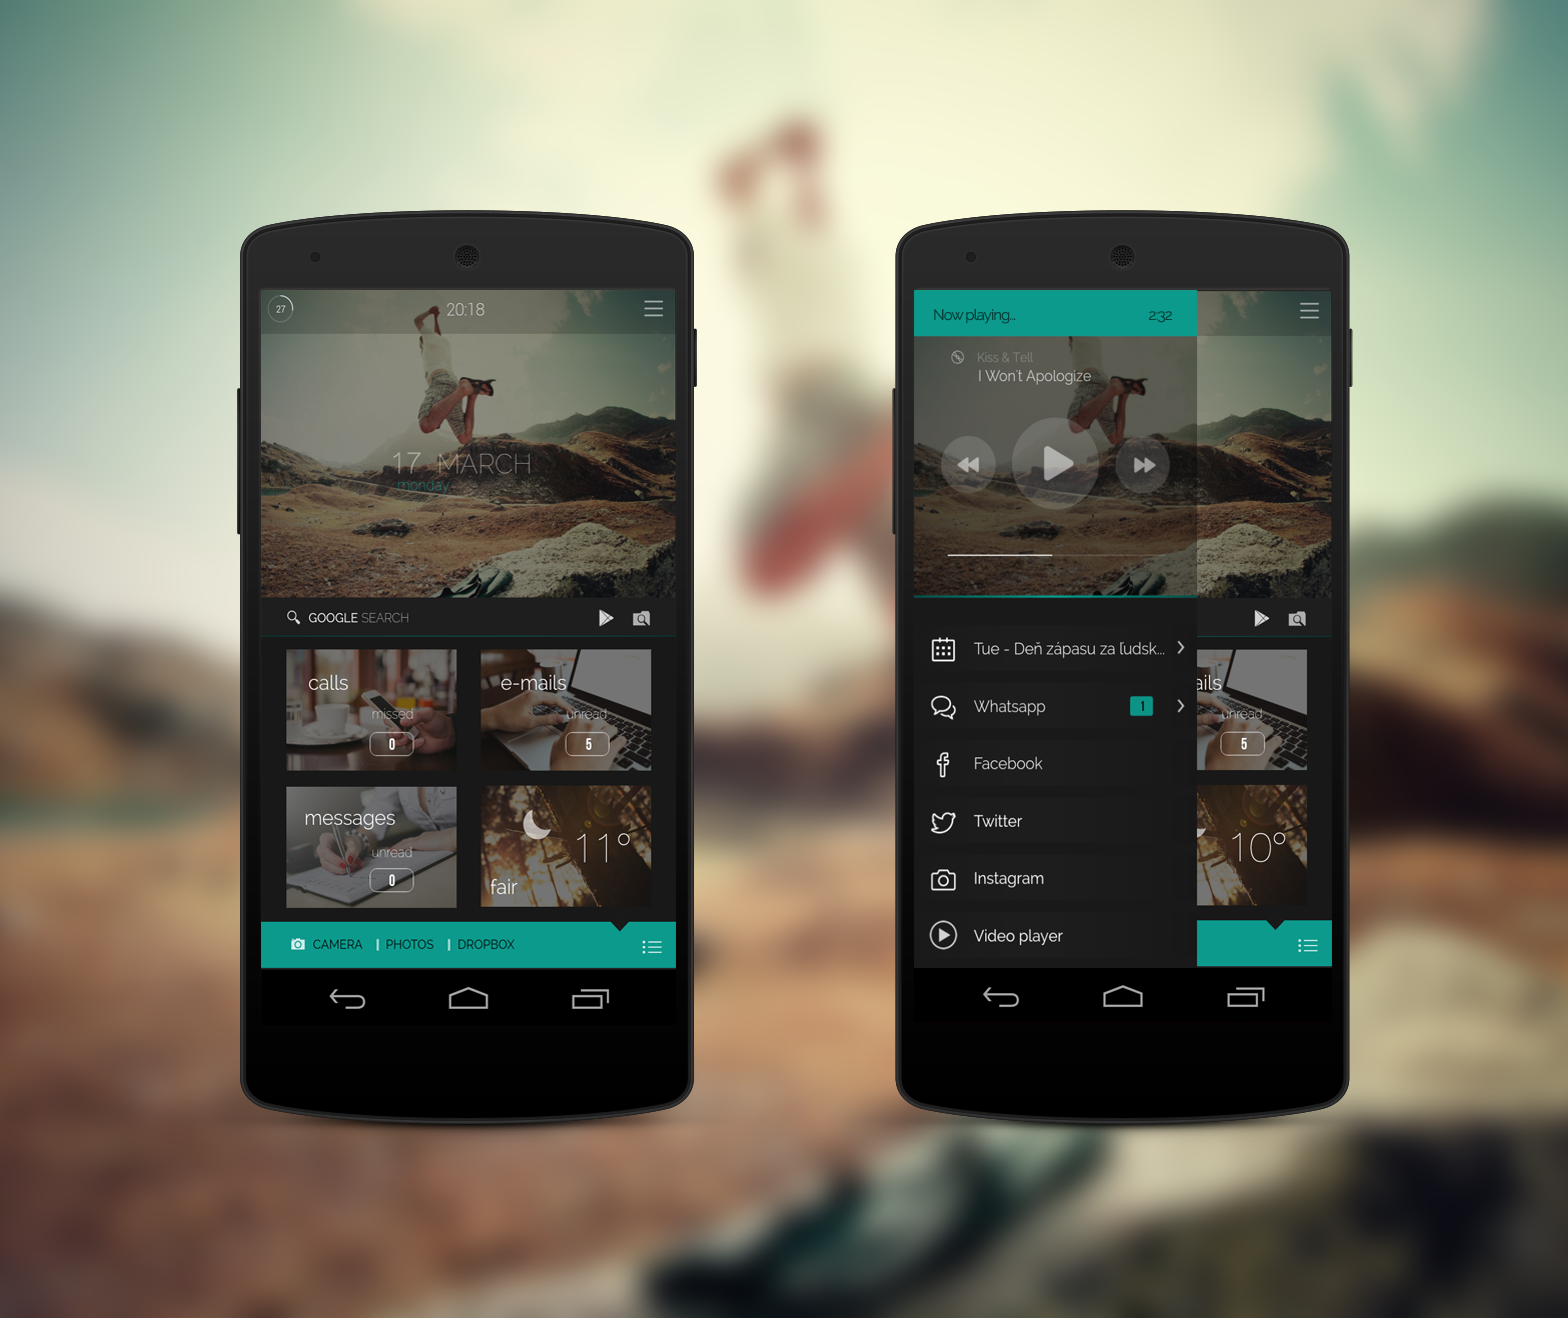 Superb FlAir Android Homescreen By 21MaRcO12 #android #homescreen #uidesign